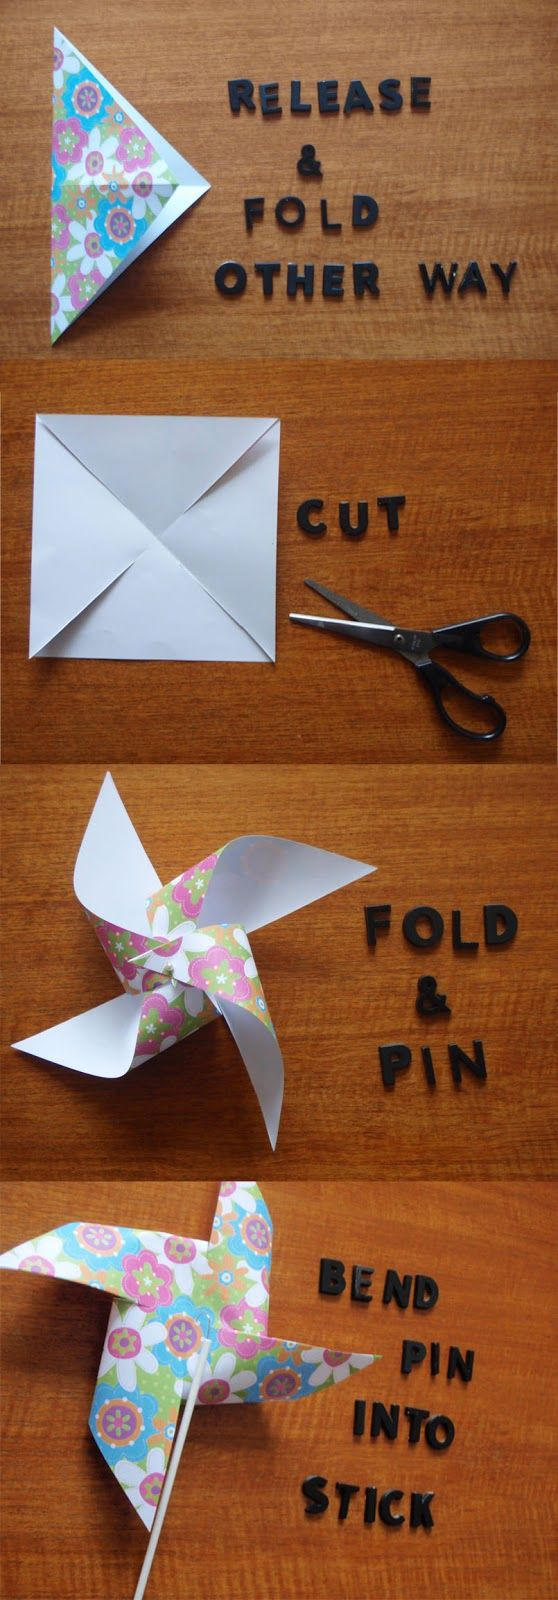 Dilly Foxtrot Investigates: NEW FEATURE.......DIY Party Decorations - Pinwheels